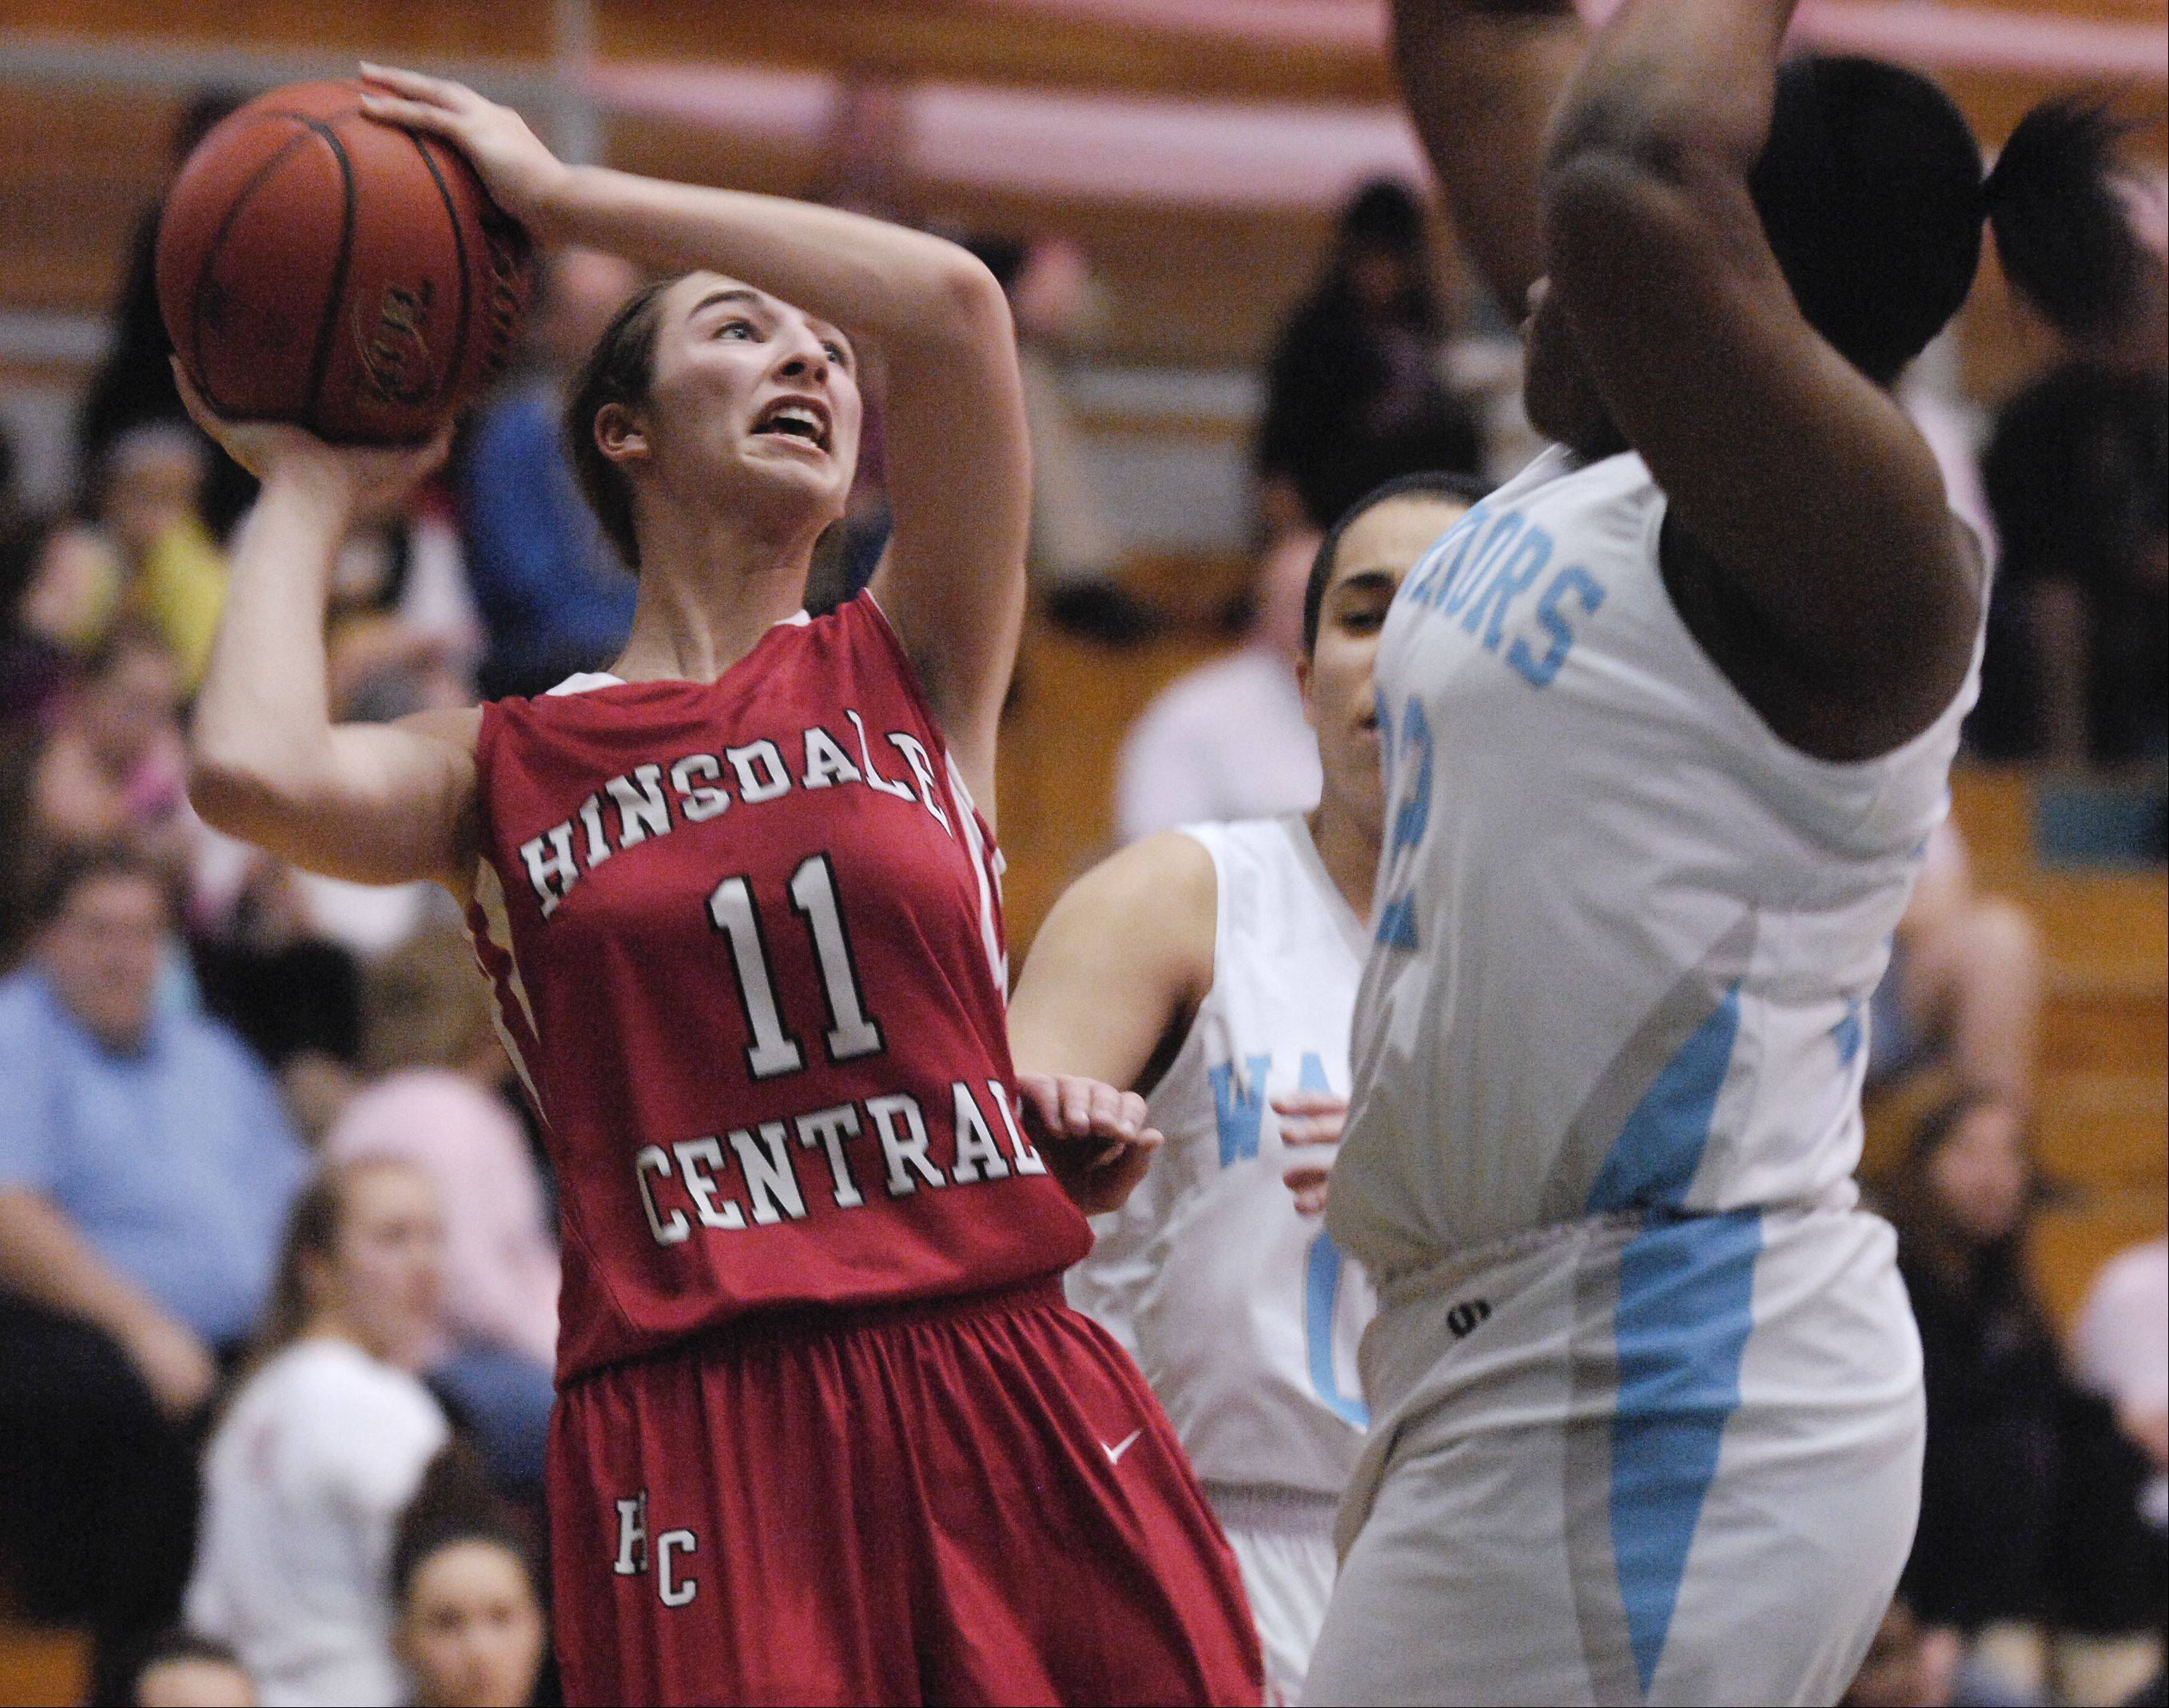 Images: Hinsdale Central vs. Willowbrook, girls basketball